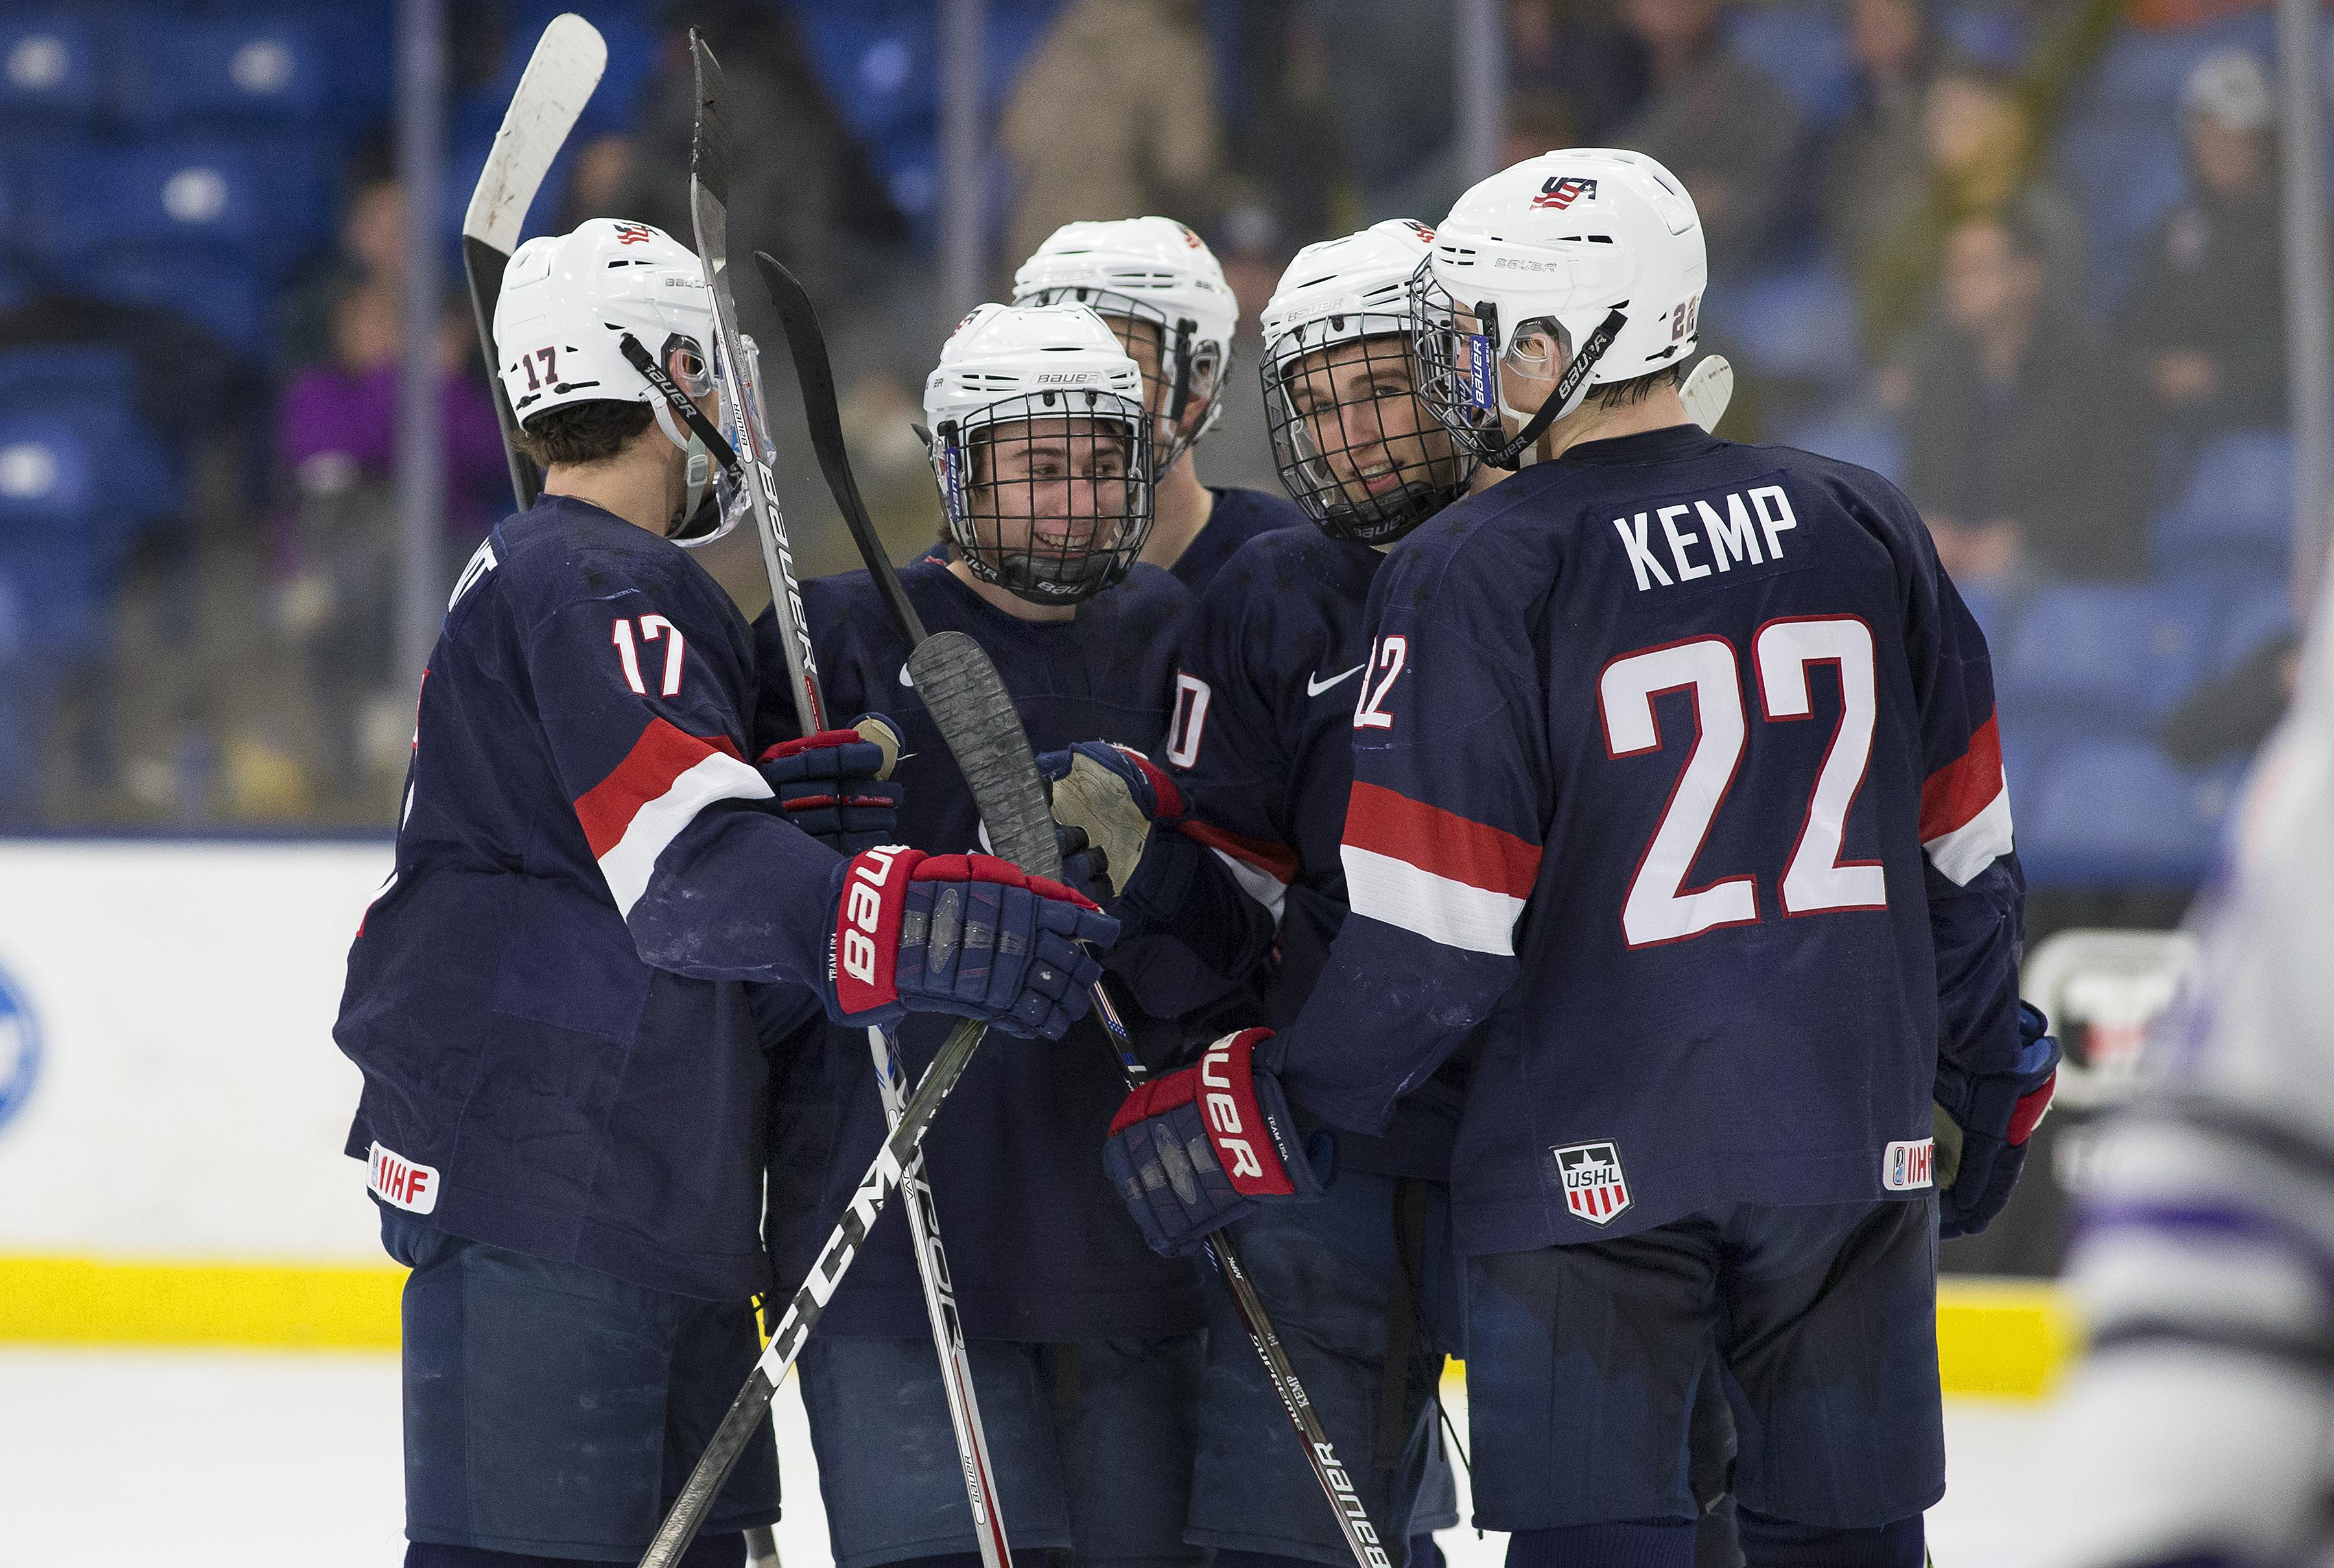 25 Players With Ntdp Ties Invited To 2017 World Junior Summer Showcase